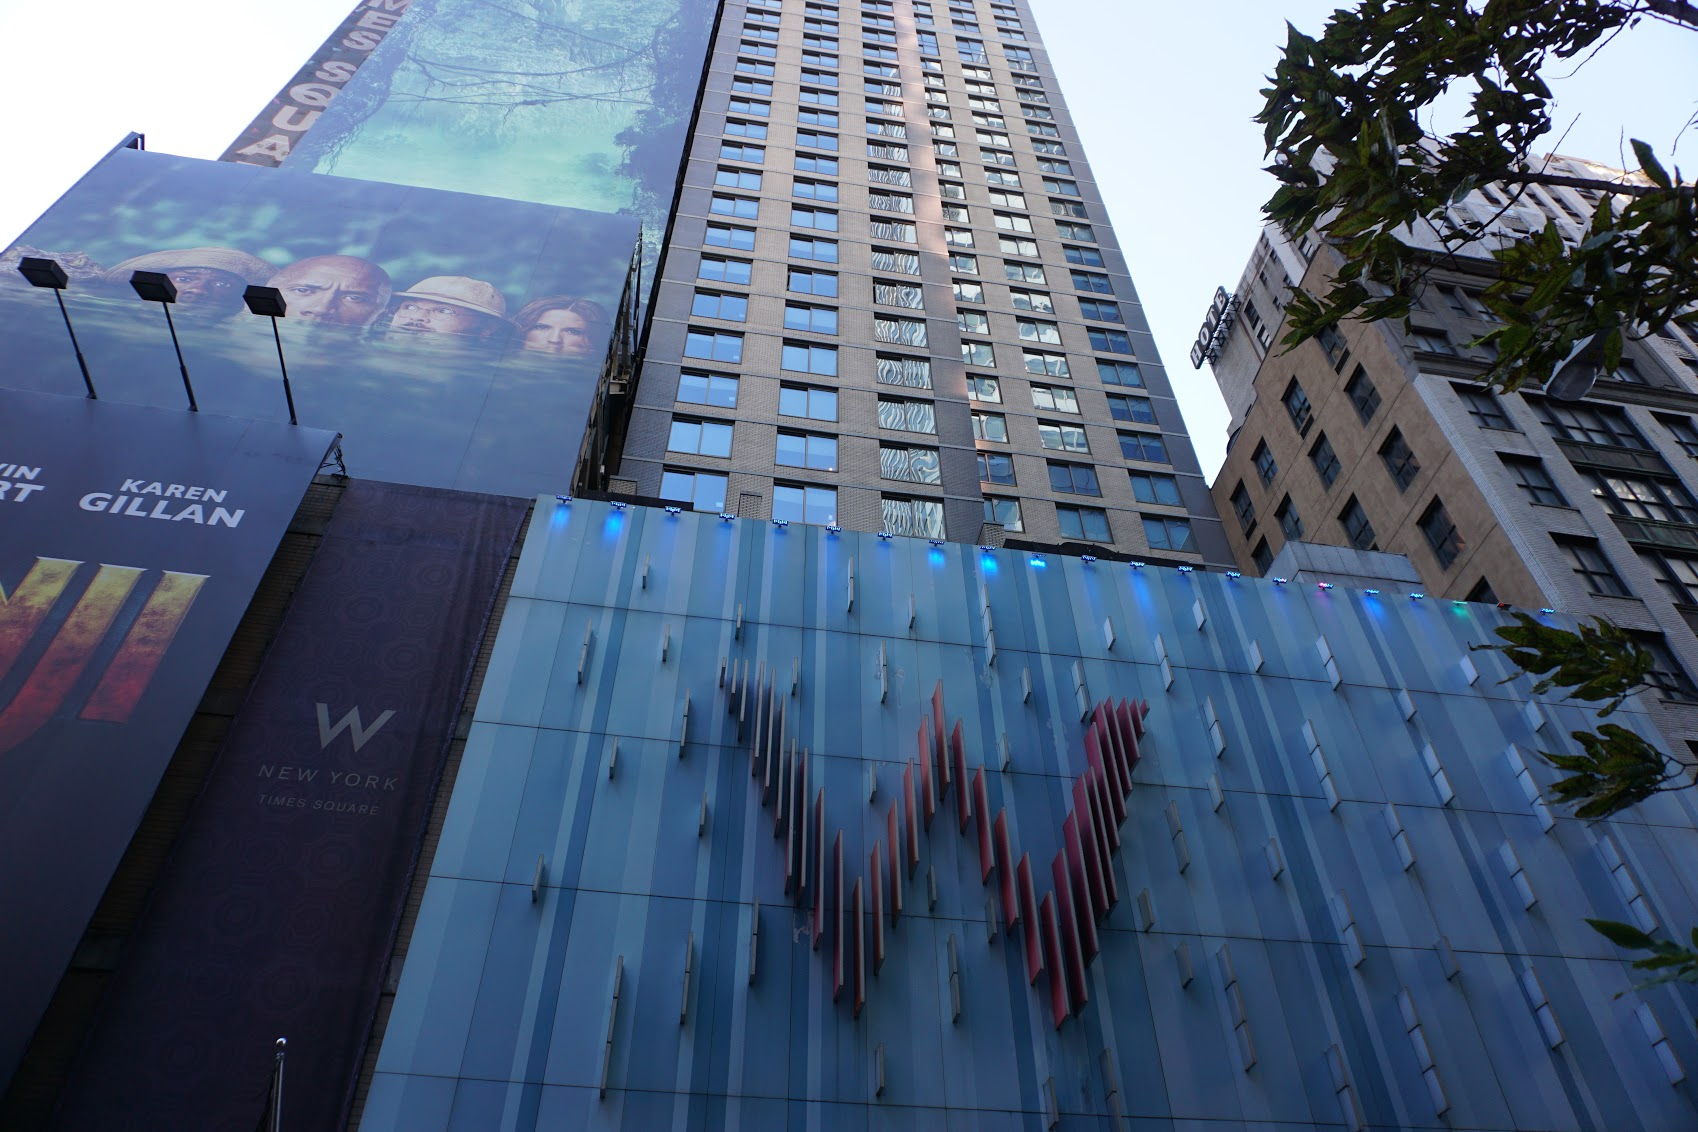 A Day Of Hotels Times Square Nyc Part 2 The Hotel Fanatic